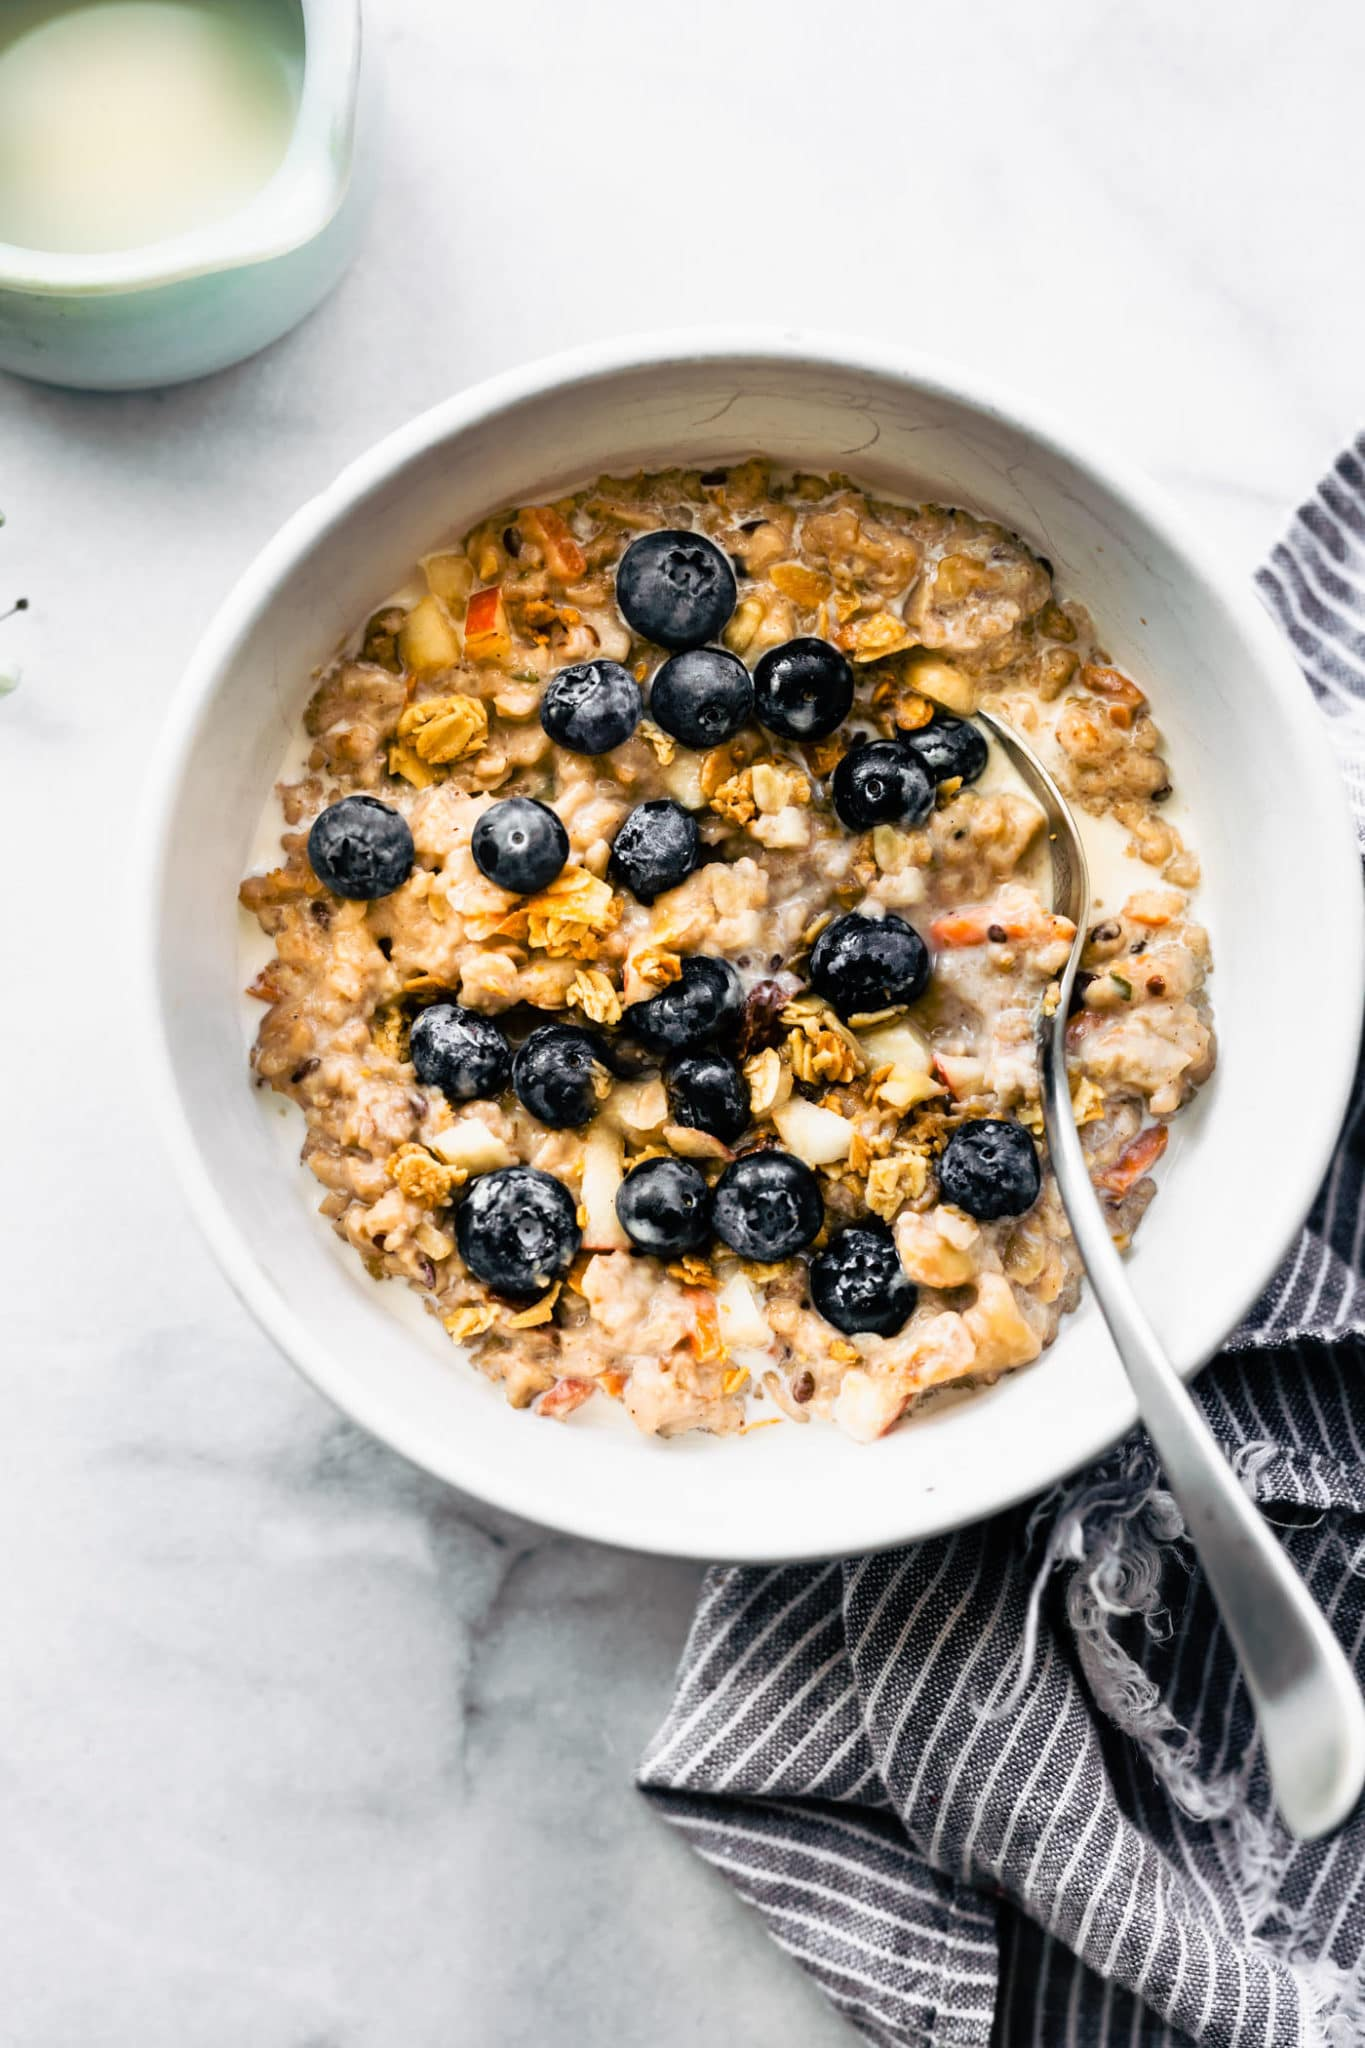 superfood instant pot oatmeal served in a white bowl topped with fresh blueberries and served with a spoon